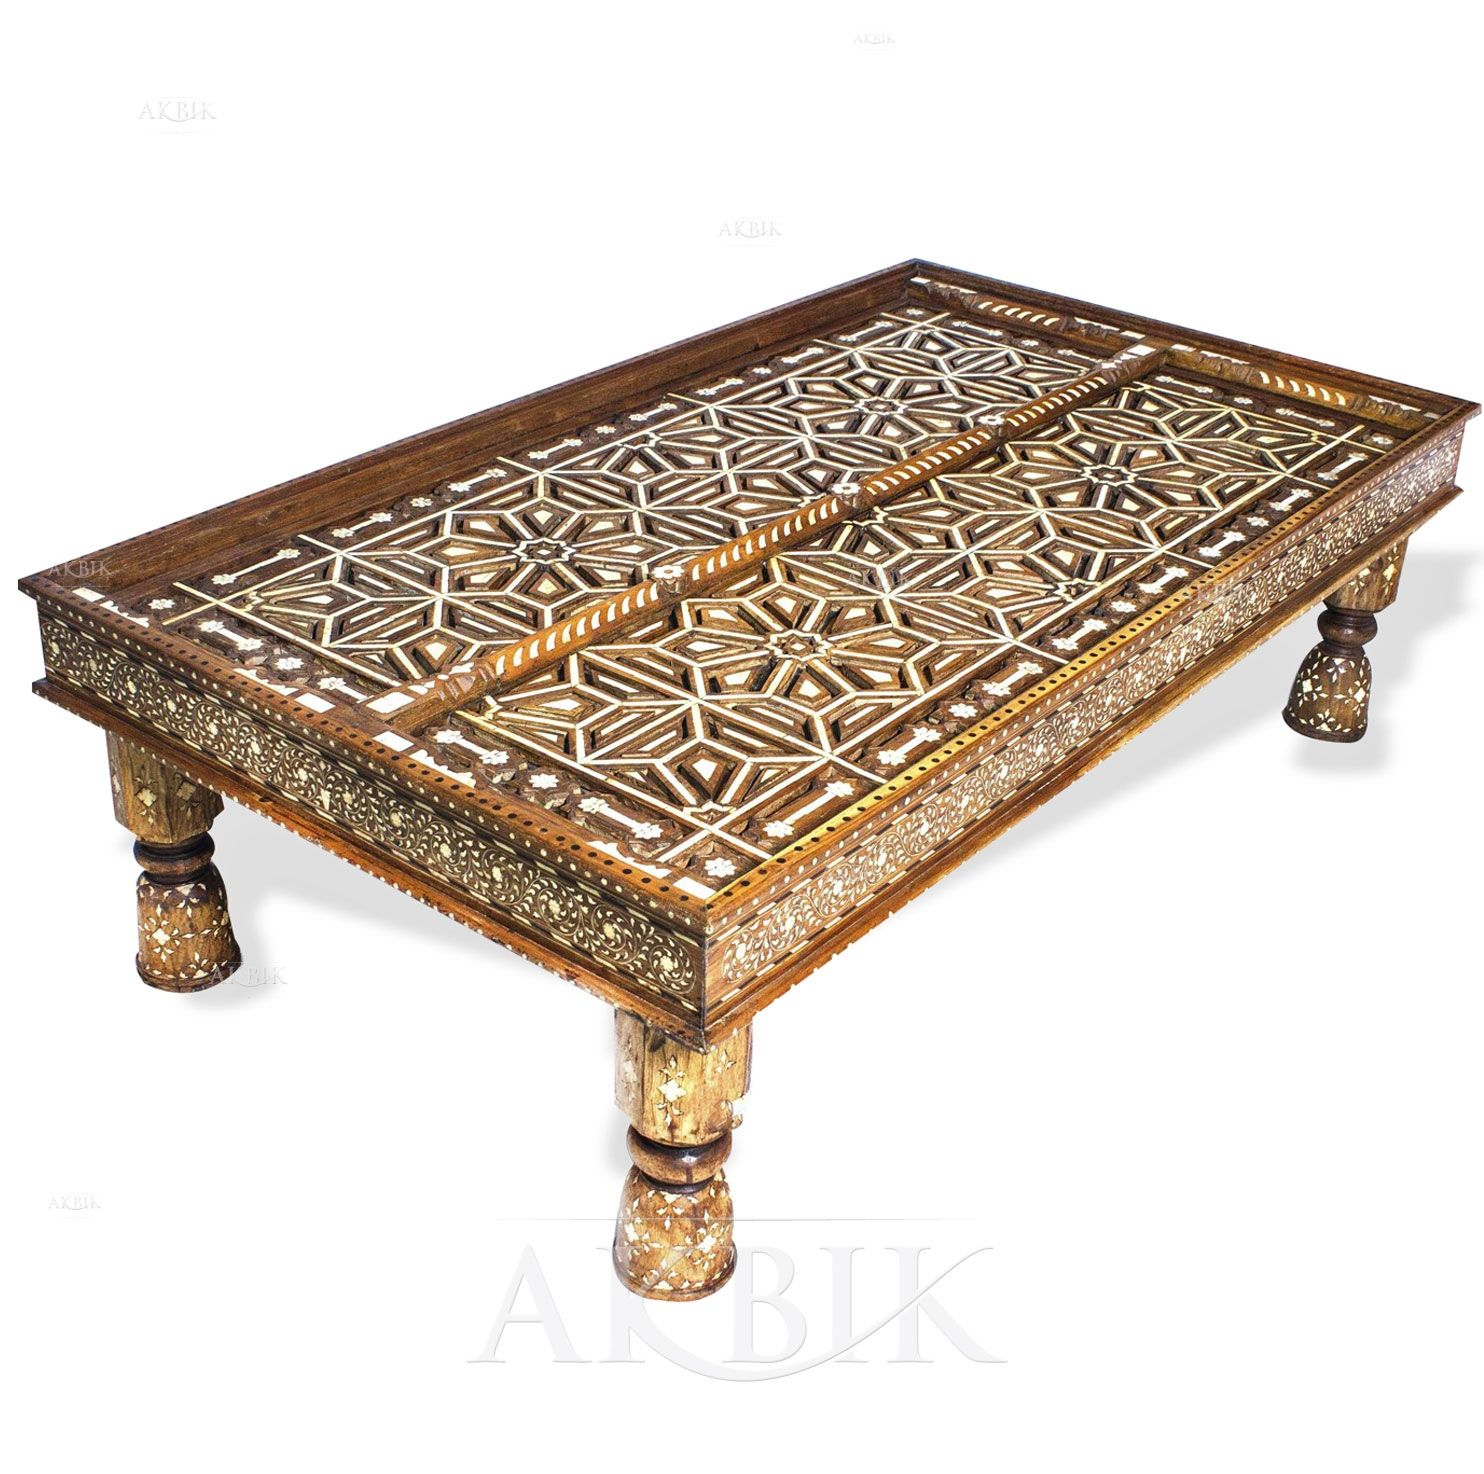 Picture Of Style No 73525 Heritage Anglo Indian Coffee Table Inlaid With Mother Of Pearl Bone Indian Coffee Table Coffee Table Bone Inlay Furniture [ 1474 x 1484 Pixel ]